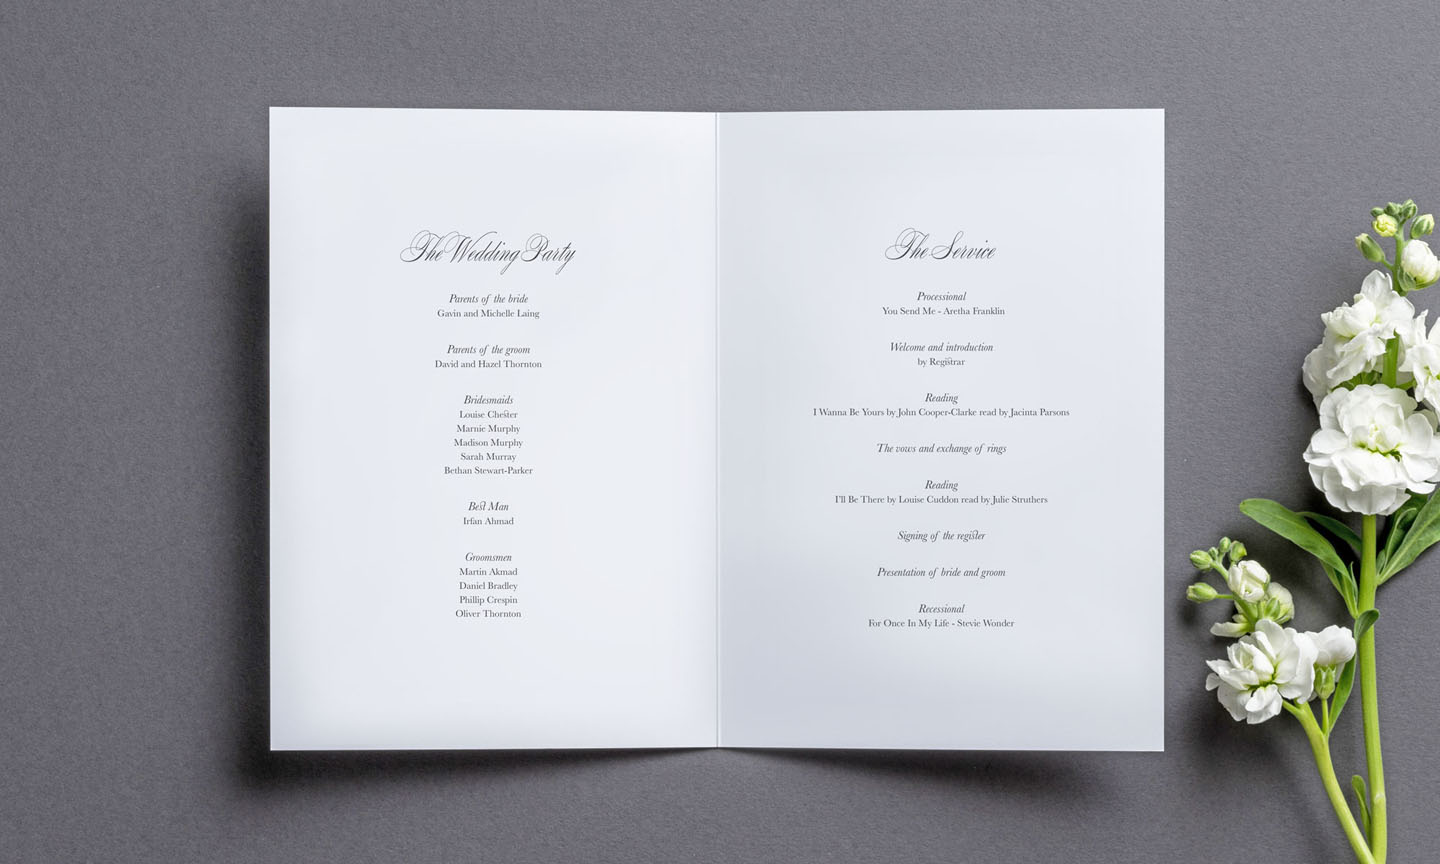 Wedding Order of Service Cards - Pemberley Inside - On the Day Wedding Stationery - Elegant Wedding Stationery by The Foil Invite Company